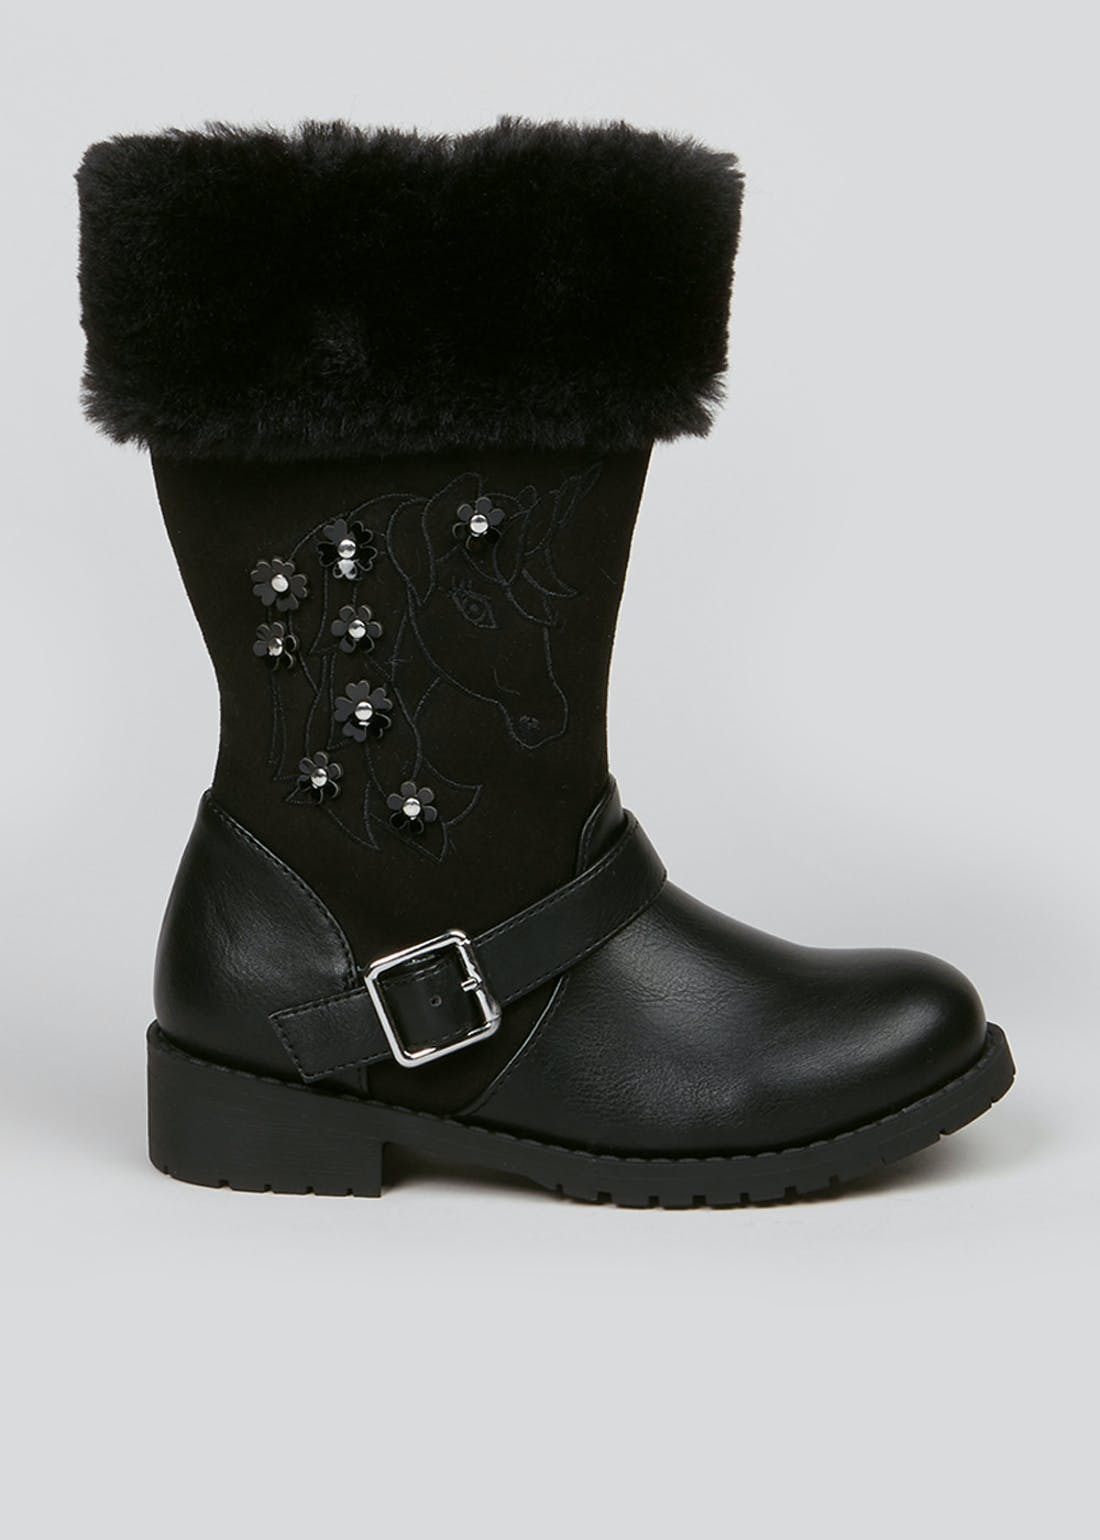 Girls Black Unicorn Boots (Younger 4-12)